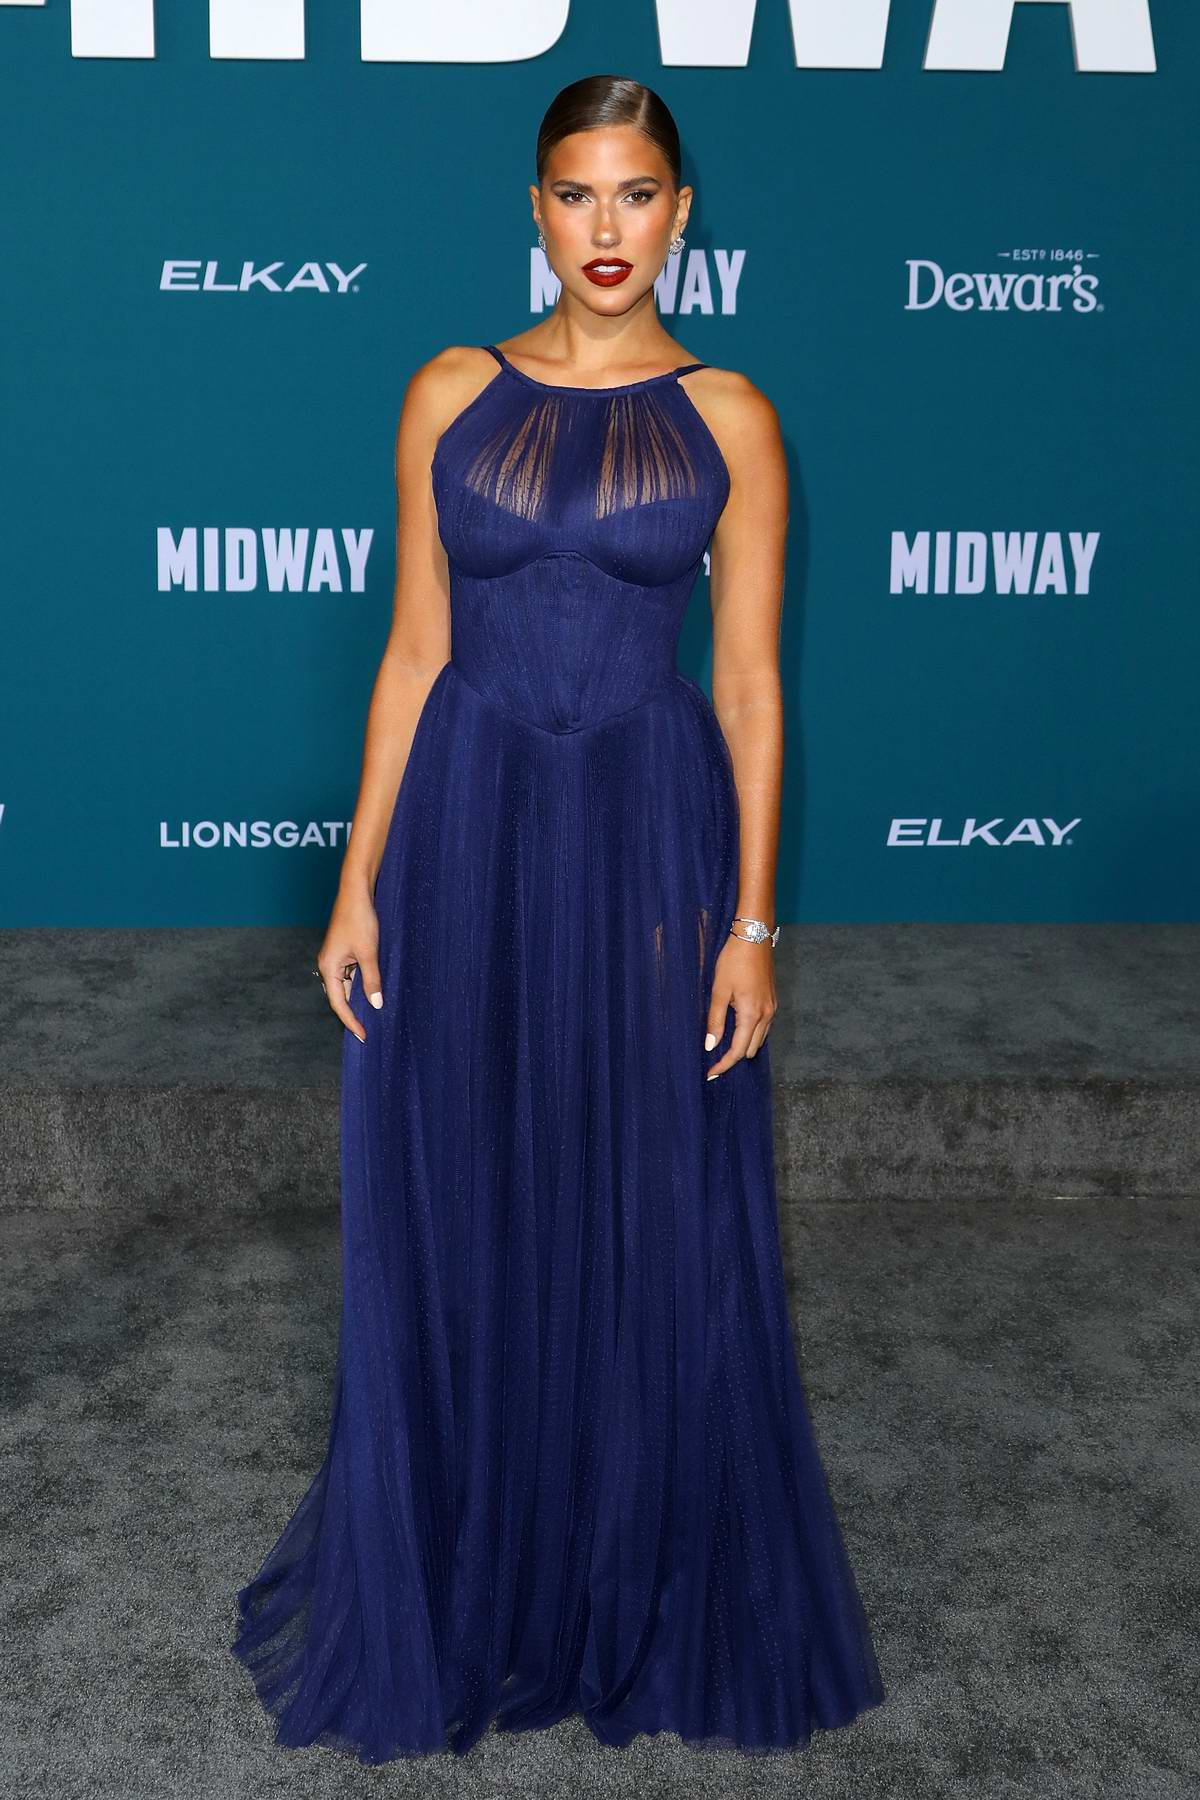 Kara Del Toro attends the Premiere of 'Midway' at Regency Village Theatre in Westwood, California